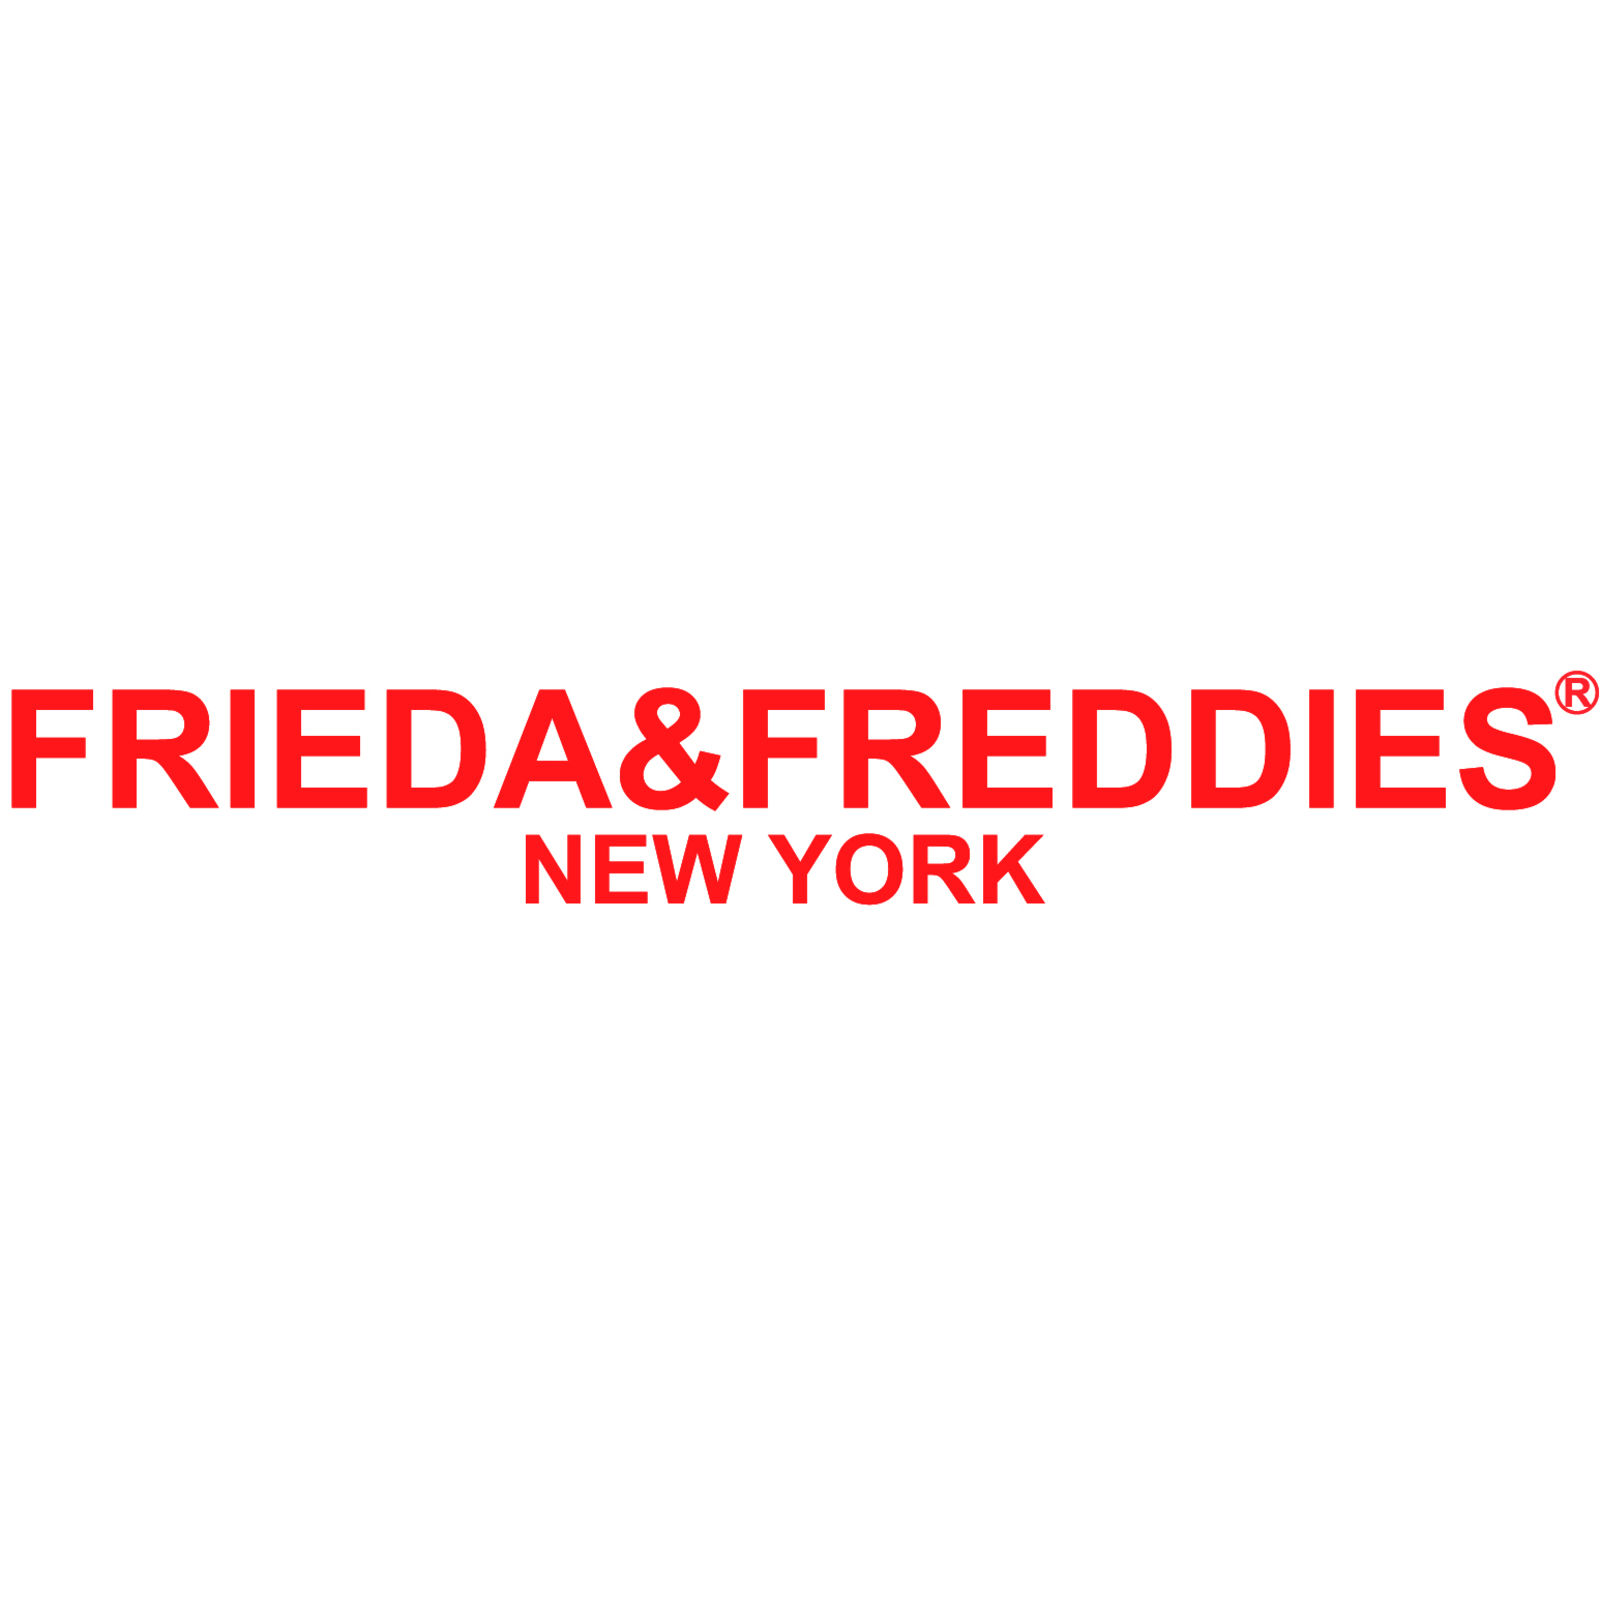 FRIEDA & FREDDIES®